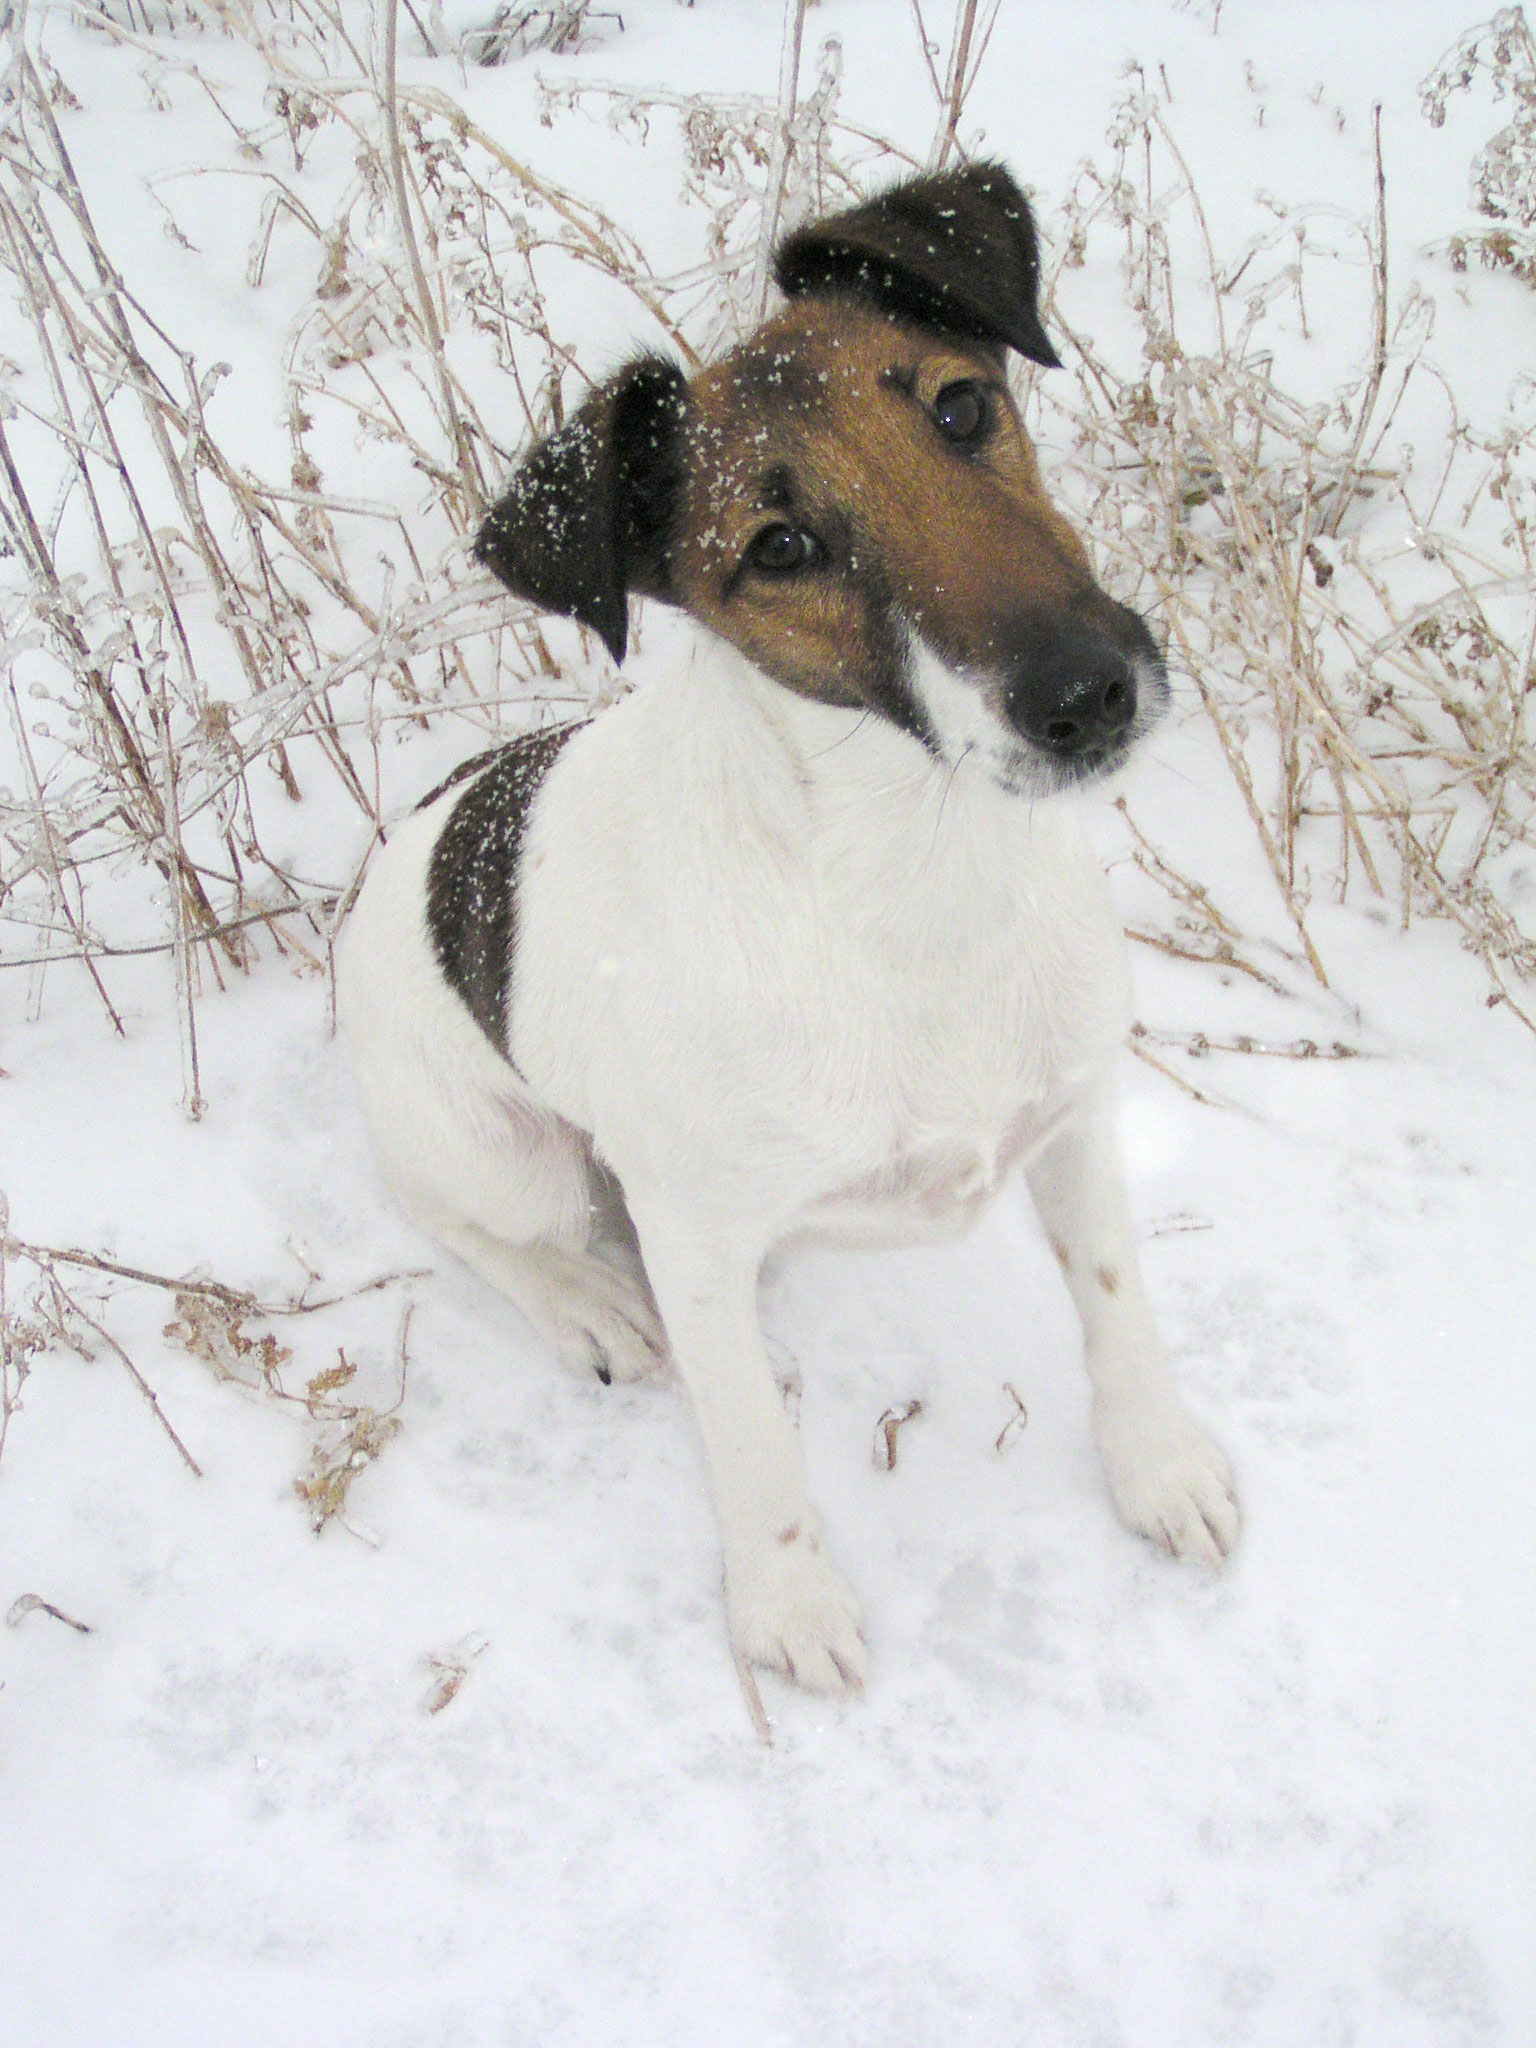 Winter Fox Terrier (Smooth) dog wallpaper